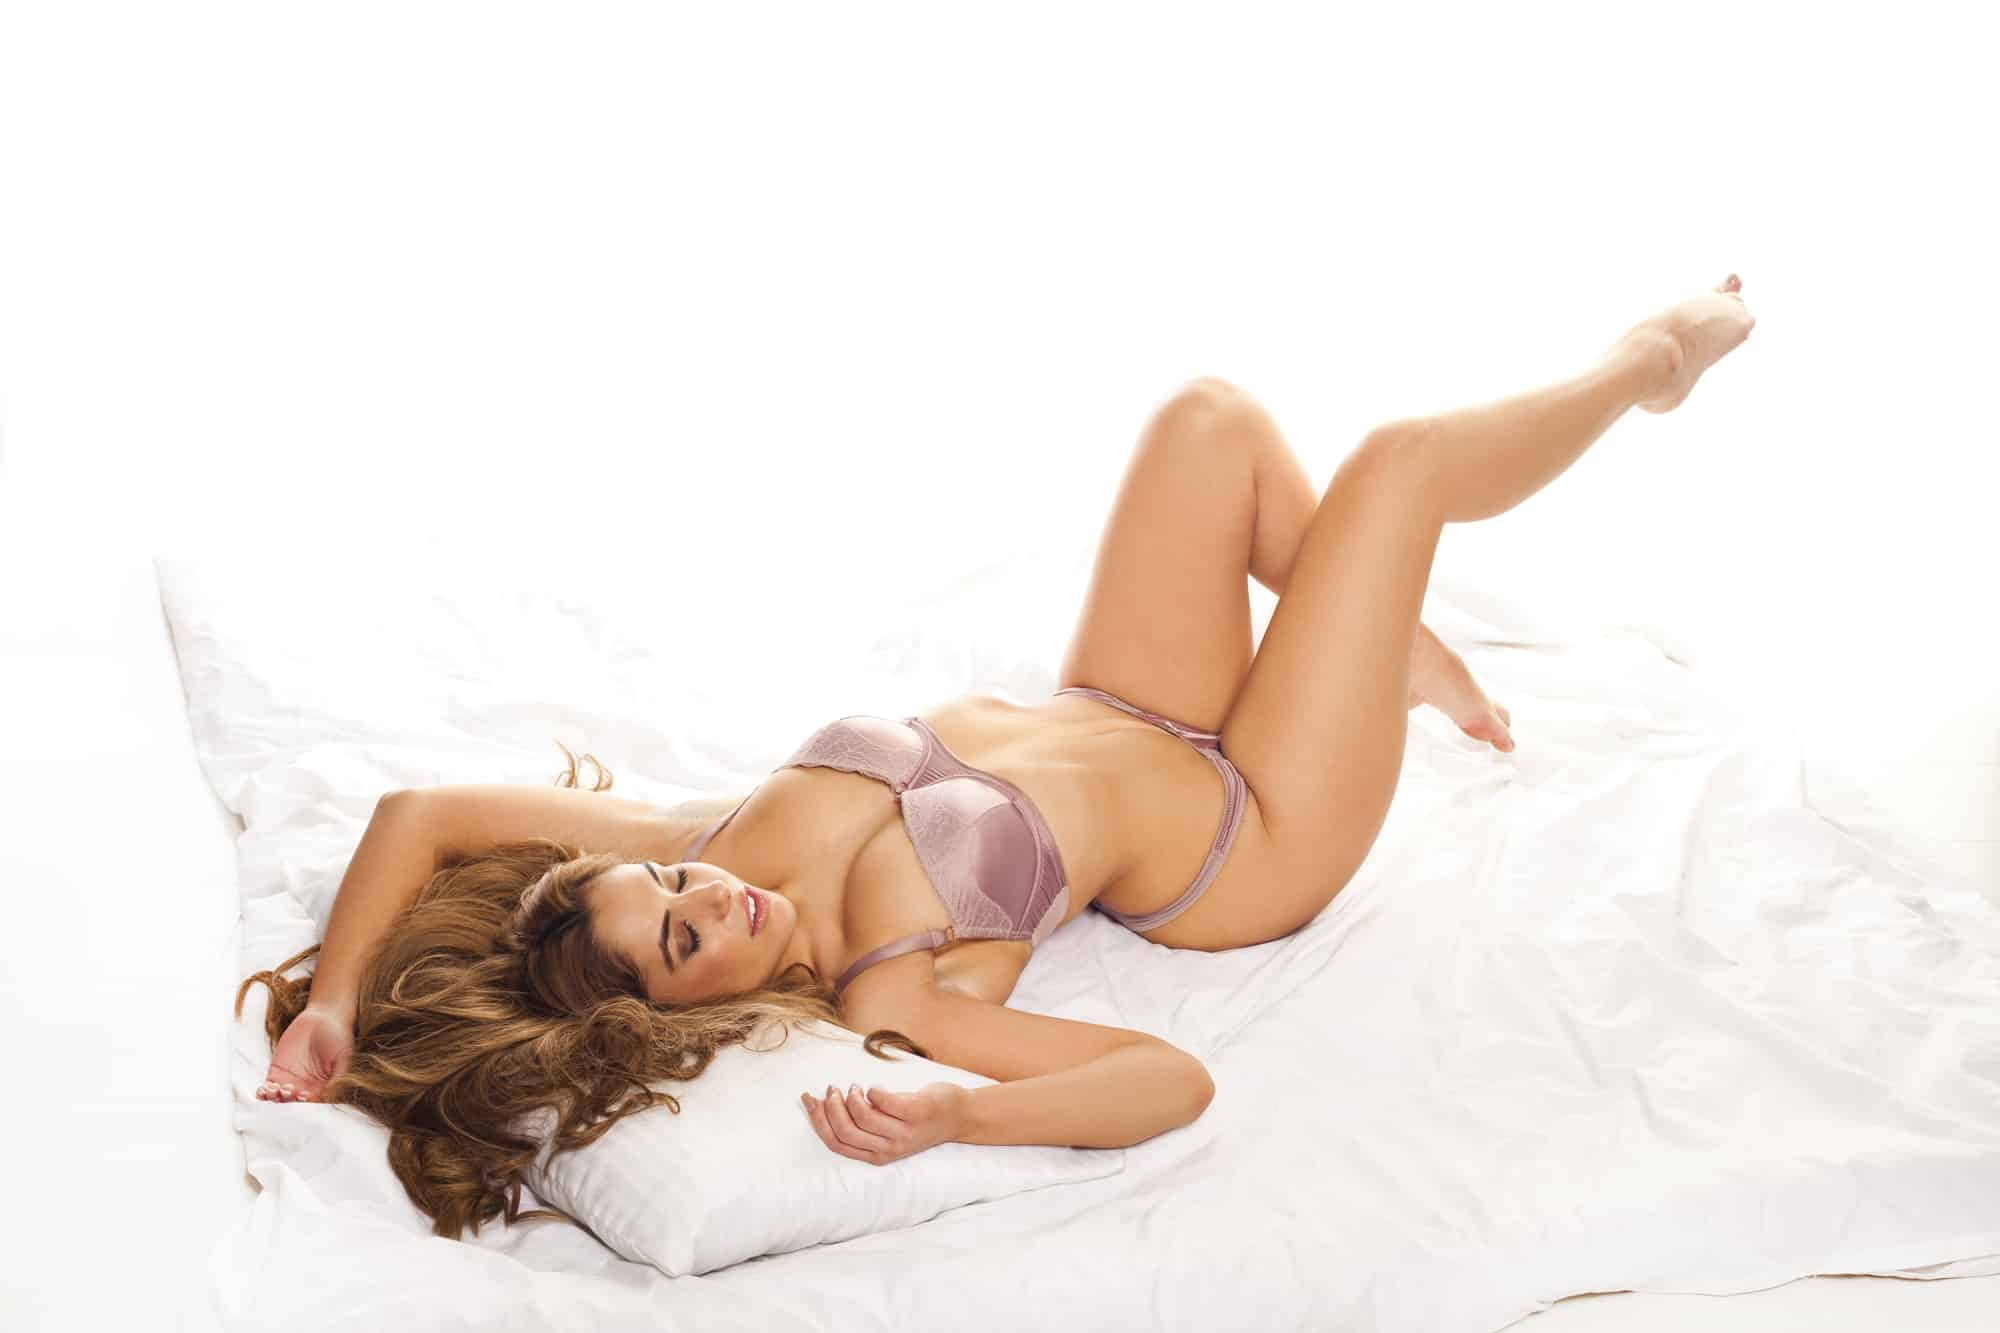 Beautiful curvy woman in lingerie posing on her back on a bed with her long brunette hair